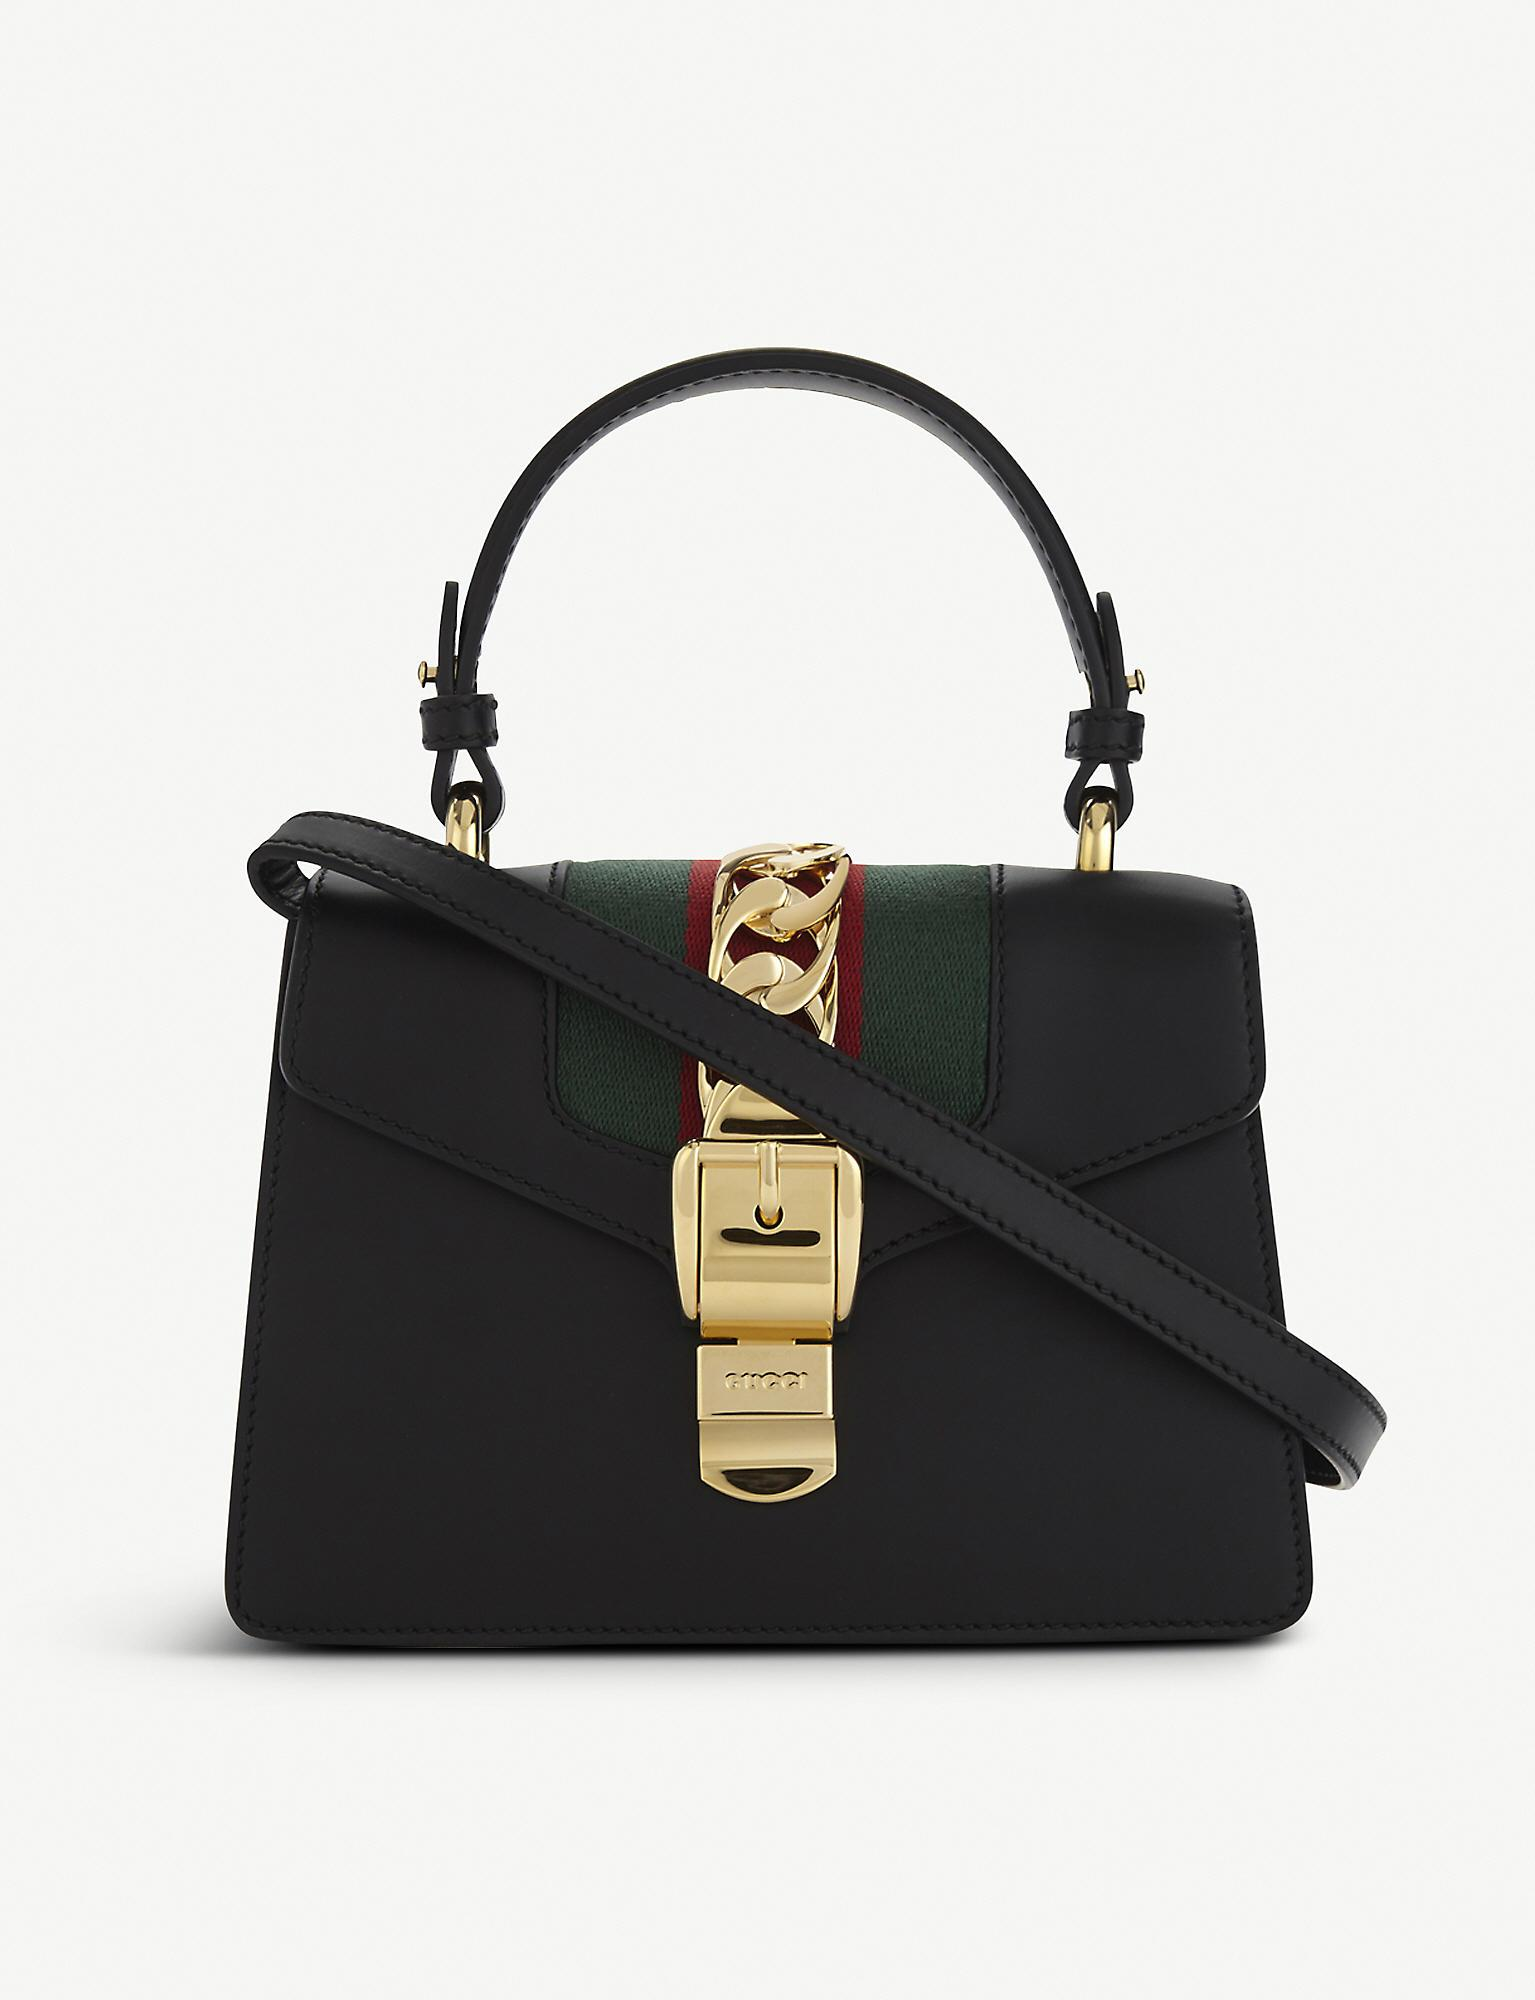 1afd323069c597 Gucci Sylvie Leather Cross-body Bag in Black - Lyst